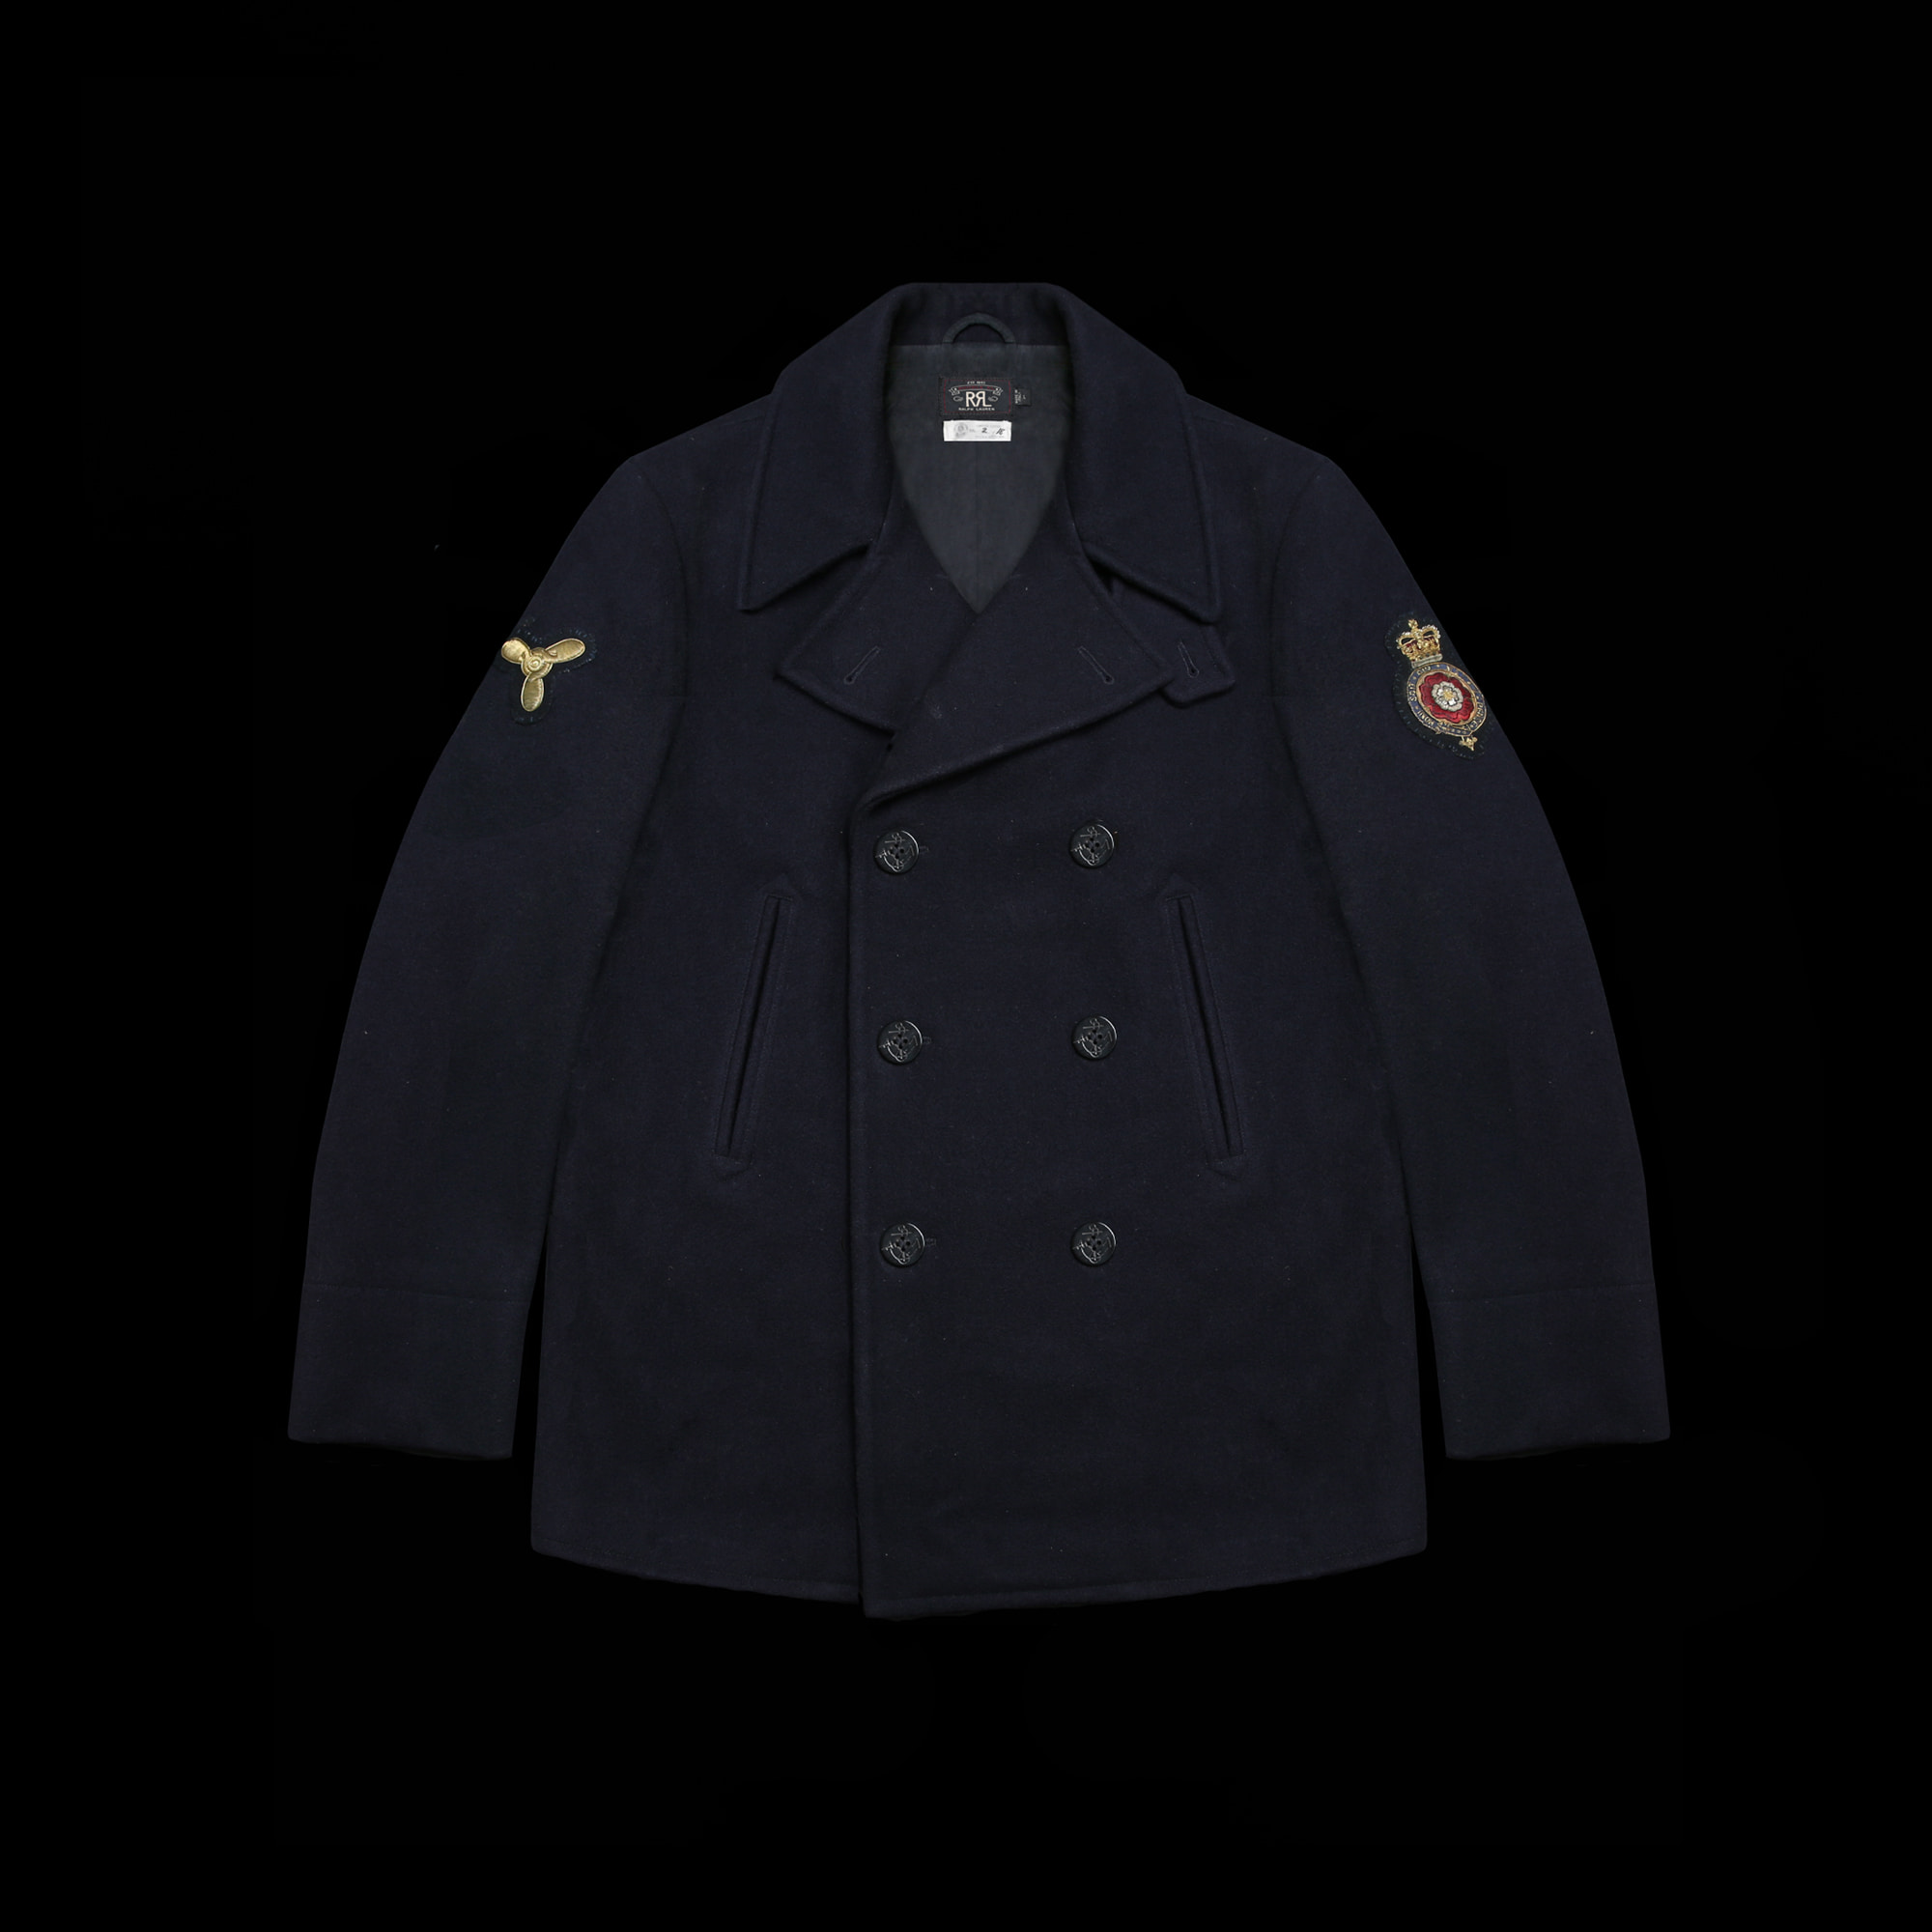 RRLLIMITED EDITIONPEACOAT